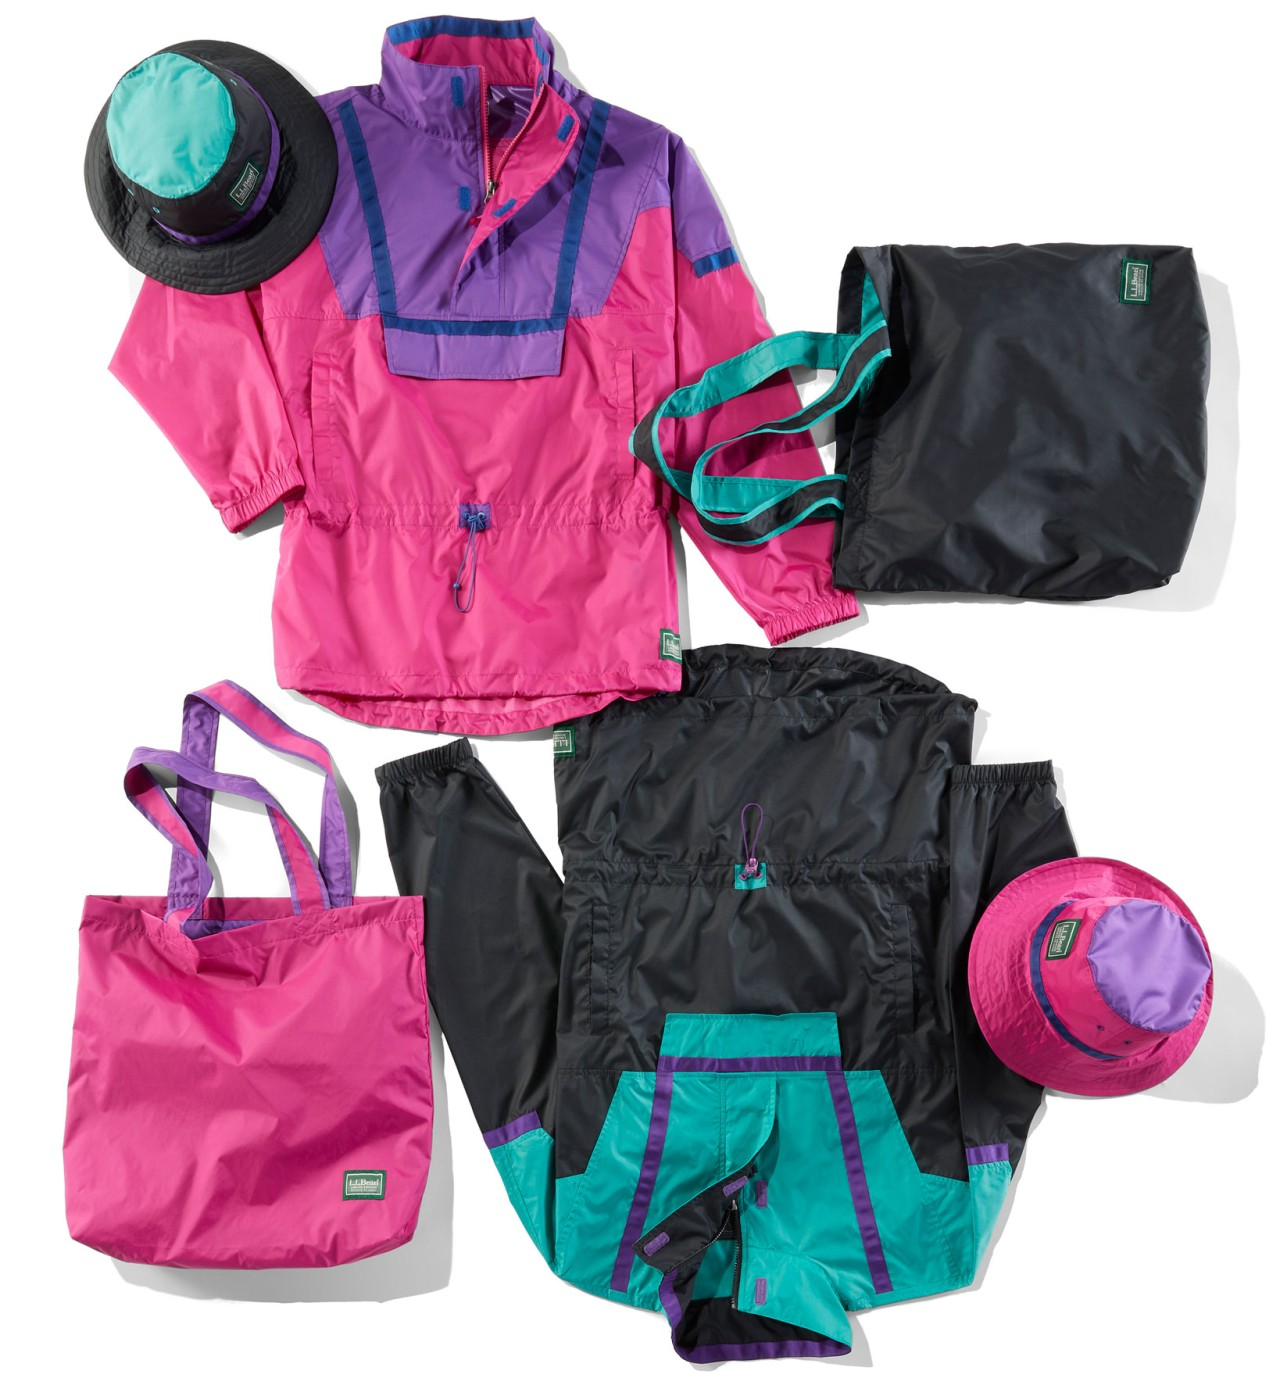 Laydown of 2 anoraks, 2 tote bags and 2 hats.